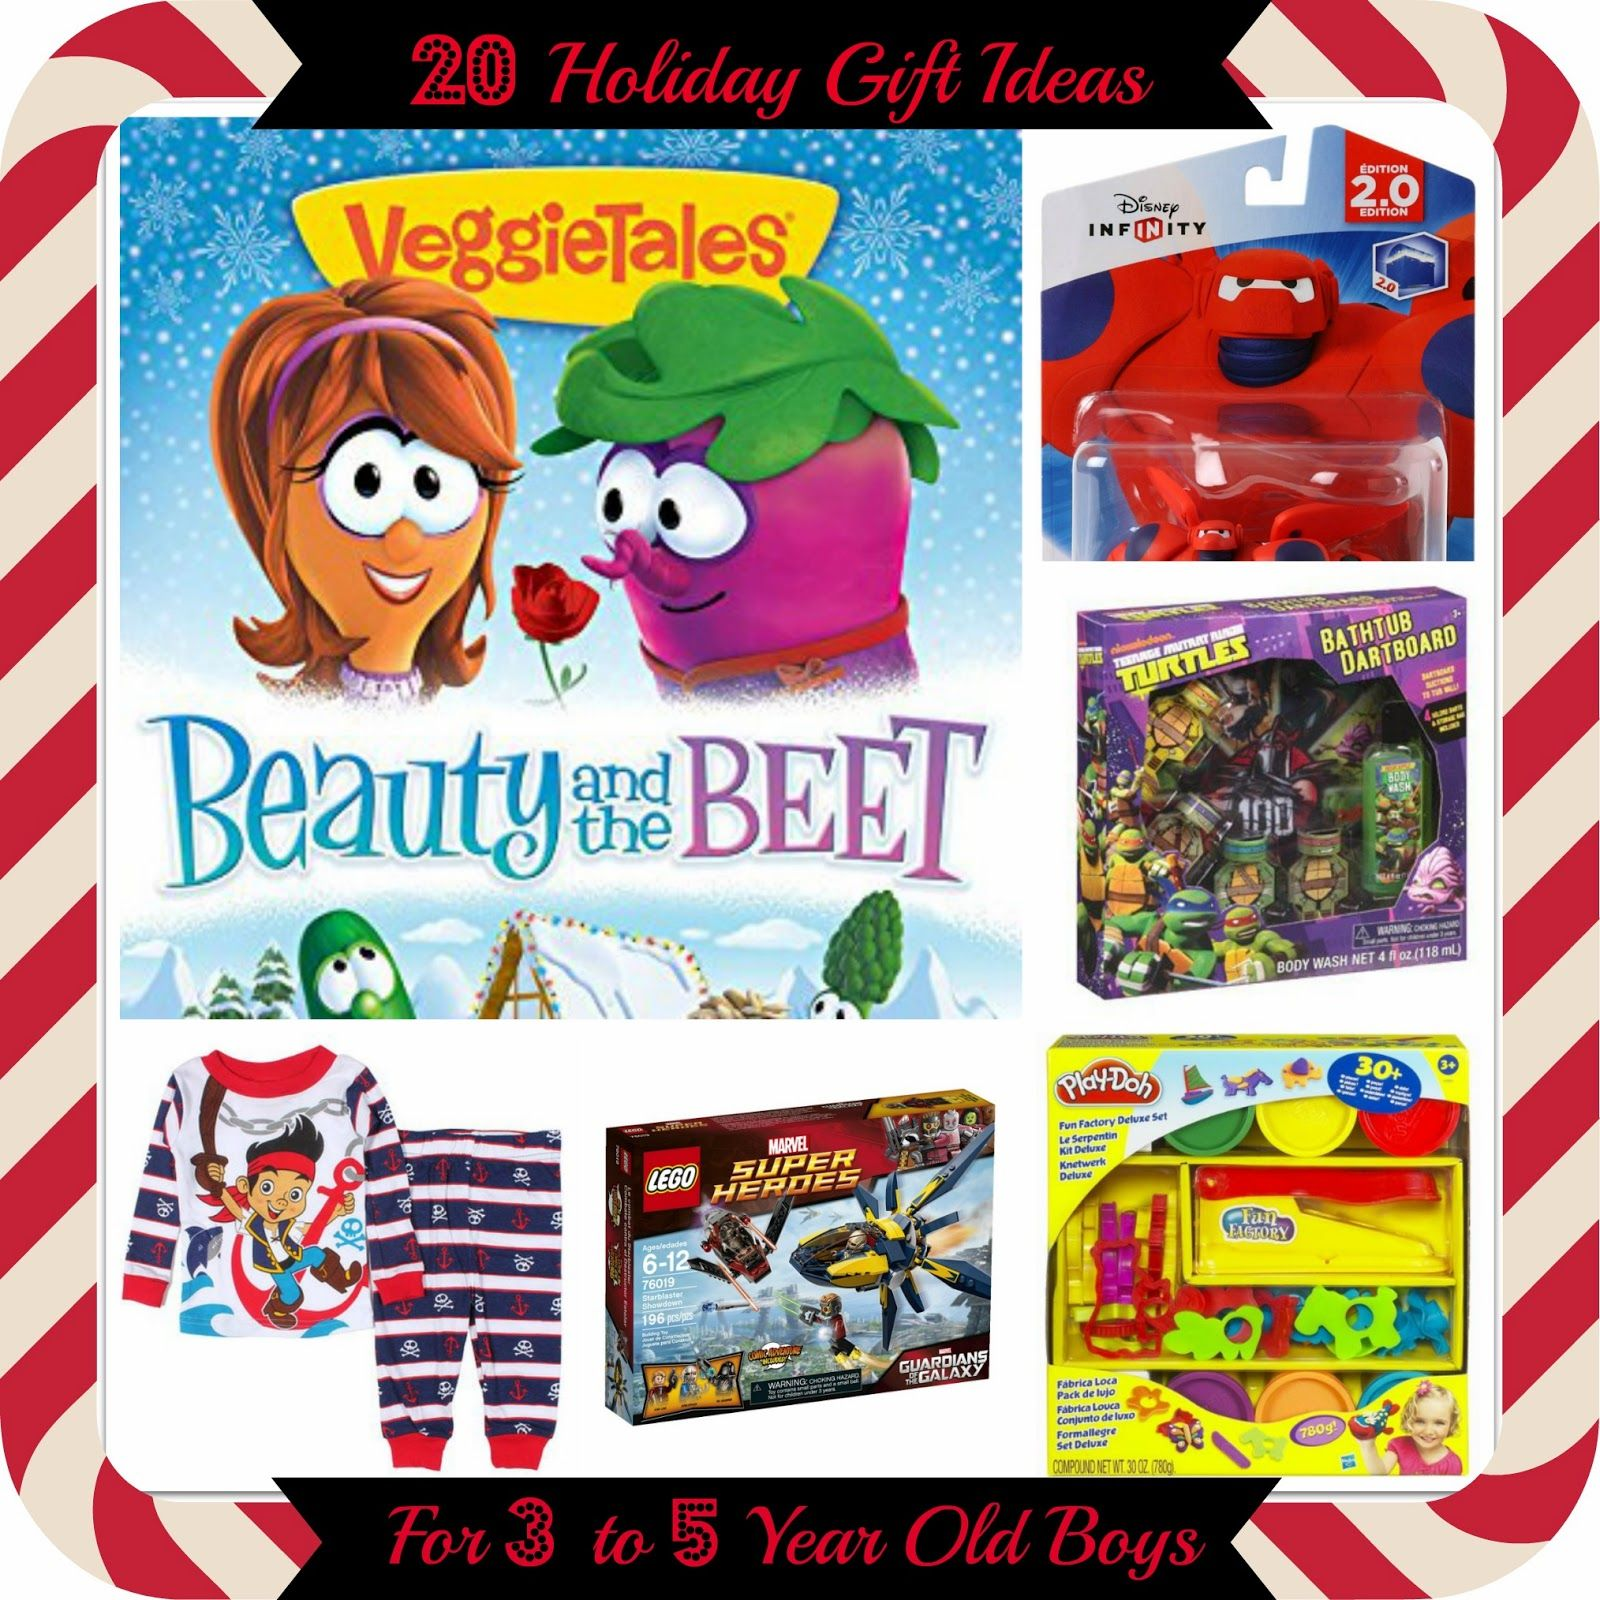 20 Holiday Gift Ideas for 3-5 Year Old Boys - Do you have a 3 to 5 year old little boy to buy for this season and have no idea what to get?  Come take a sneak peek at my sons Christmas list who have done all the hard work for you! #Christmas2014